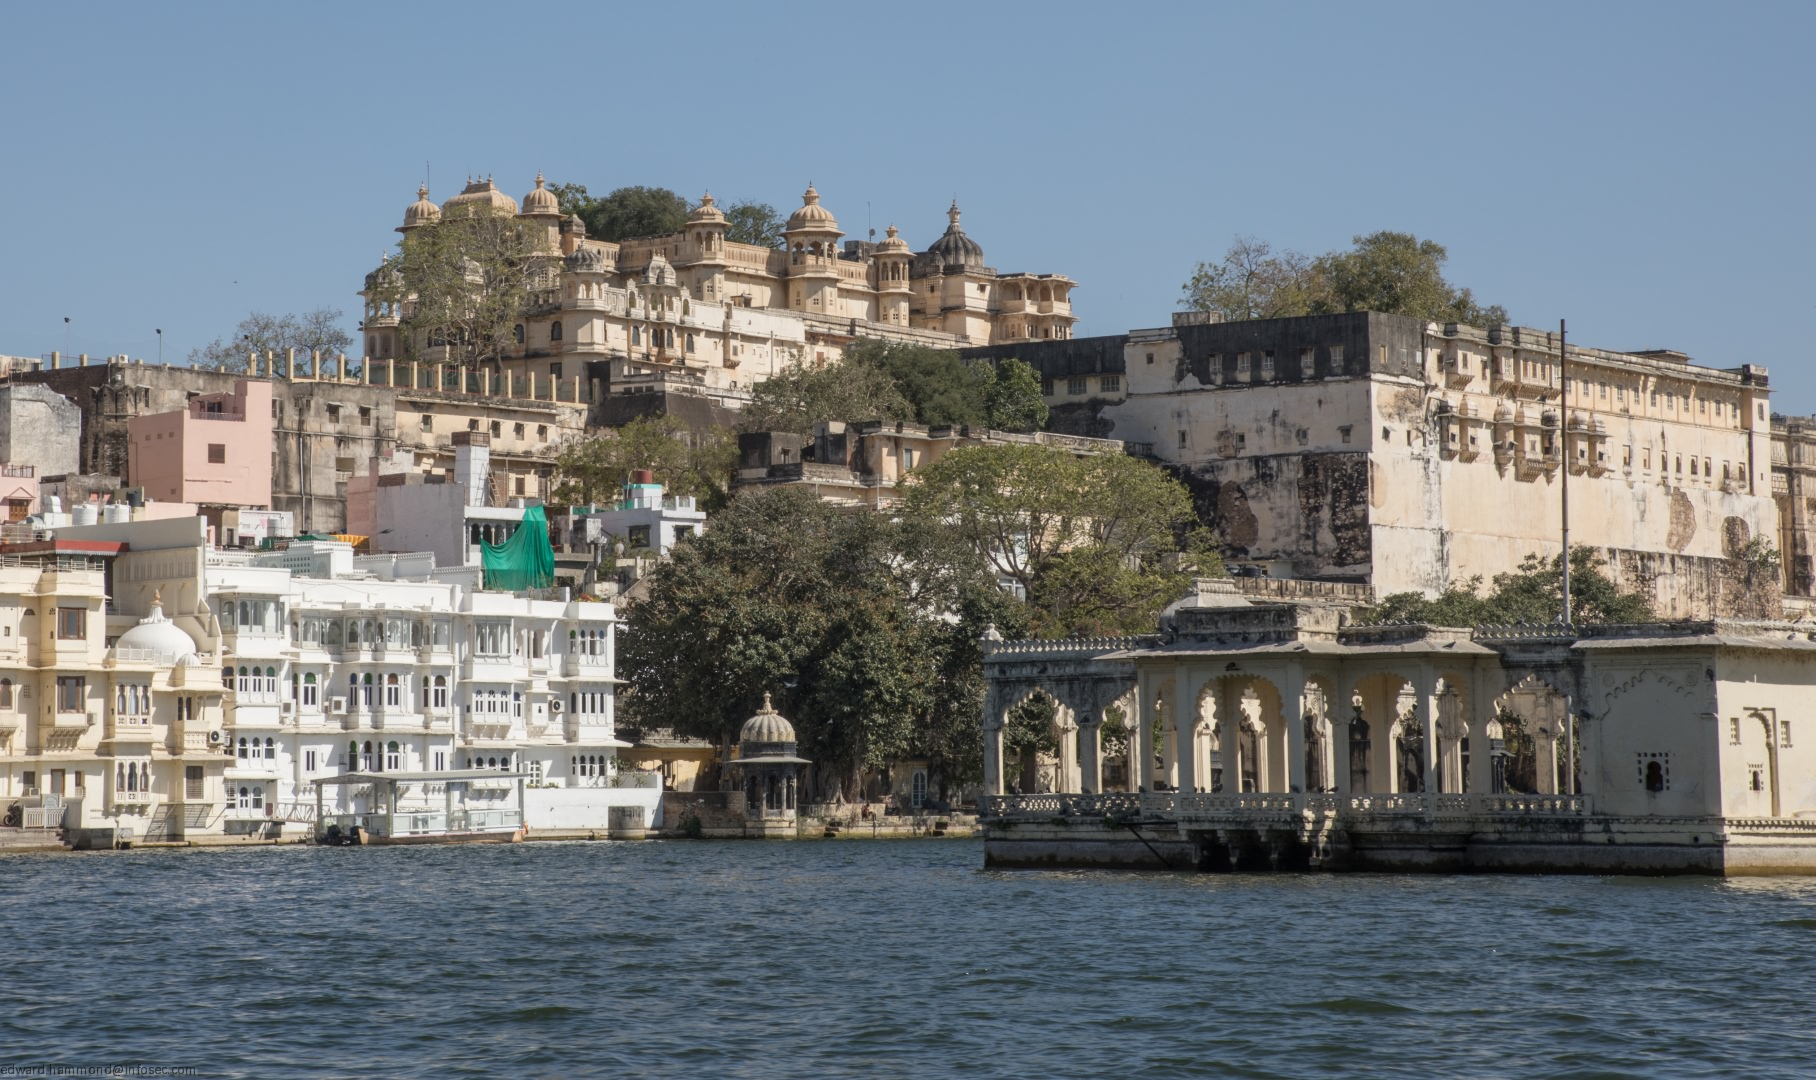 Udaipur City Palace from the water, India